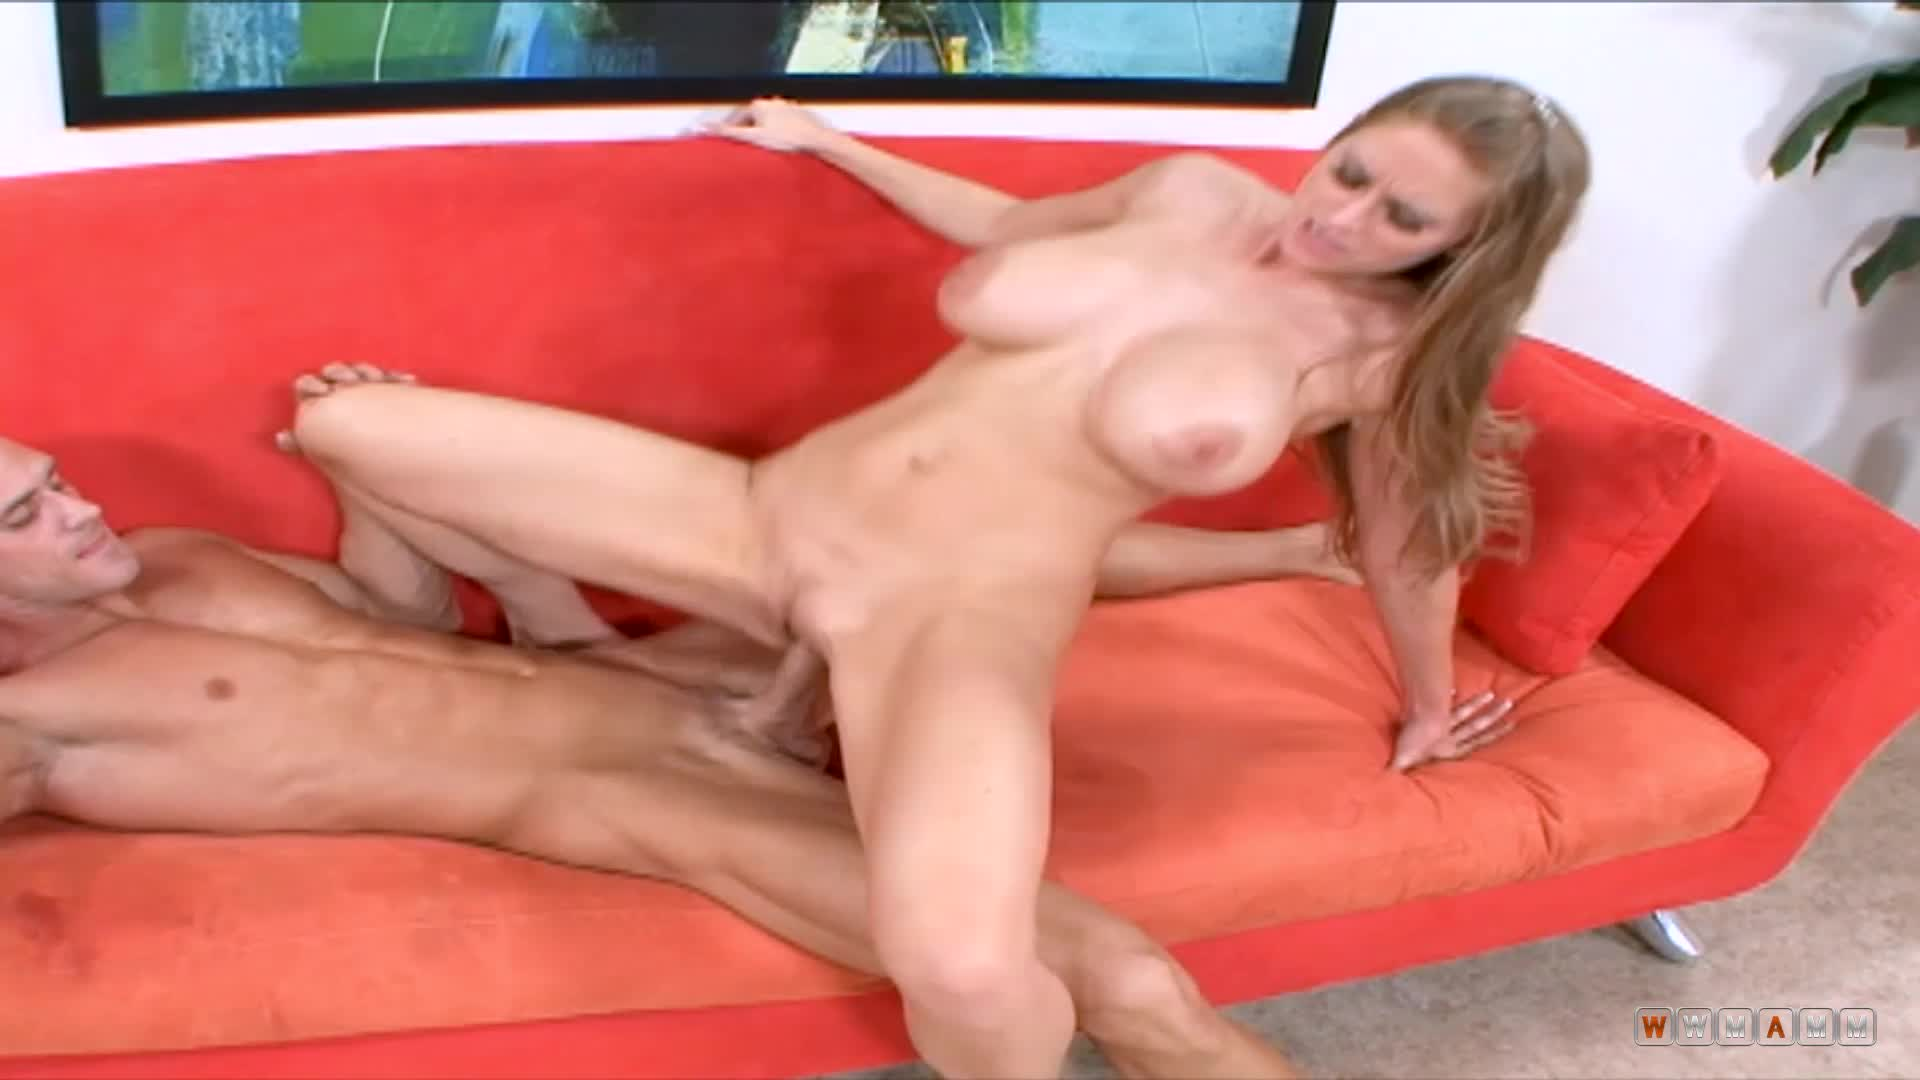 Abby Rode Needs A Guy That Knows What To Do With Those Huge Boobs